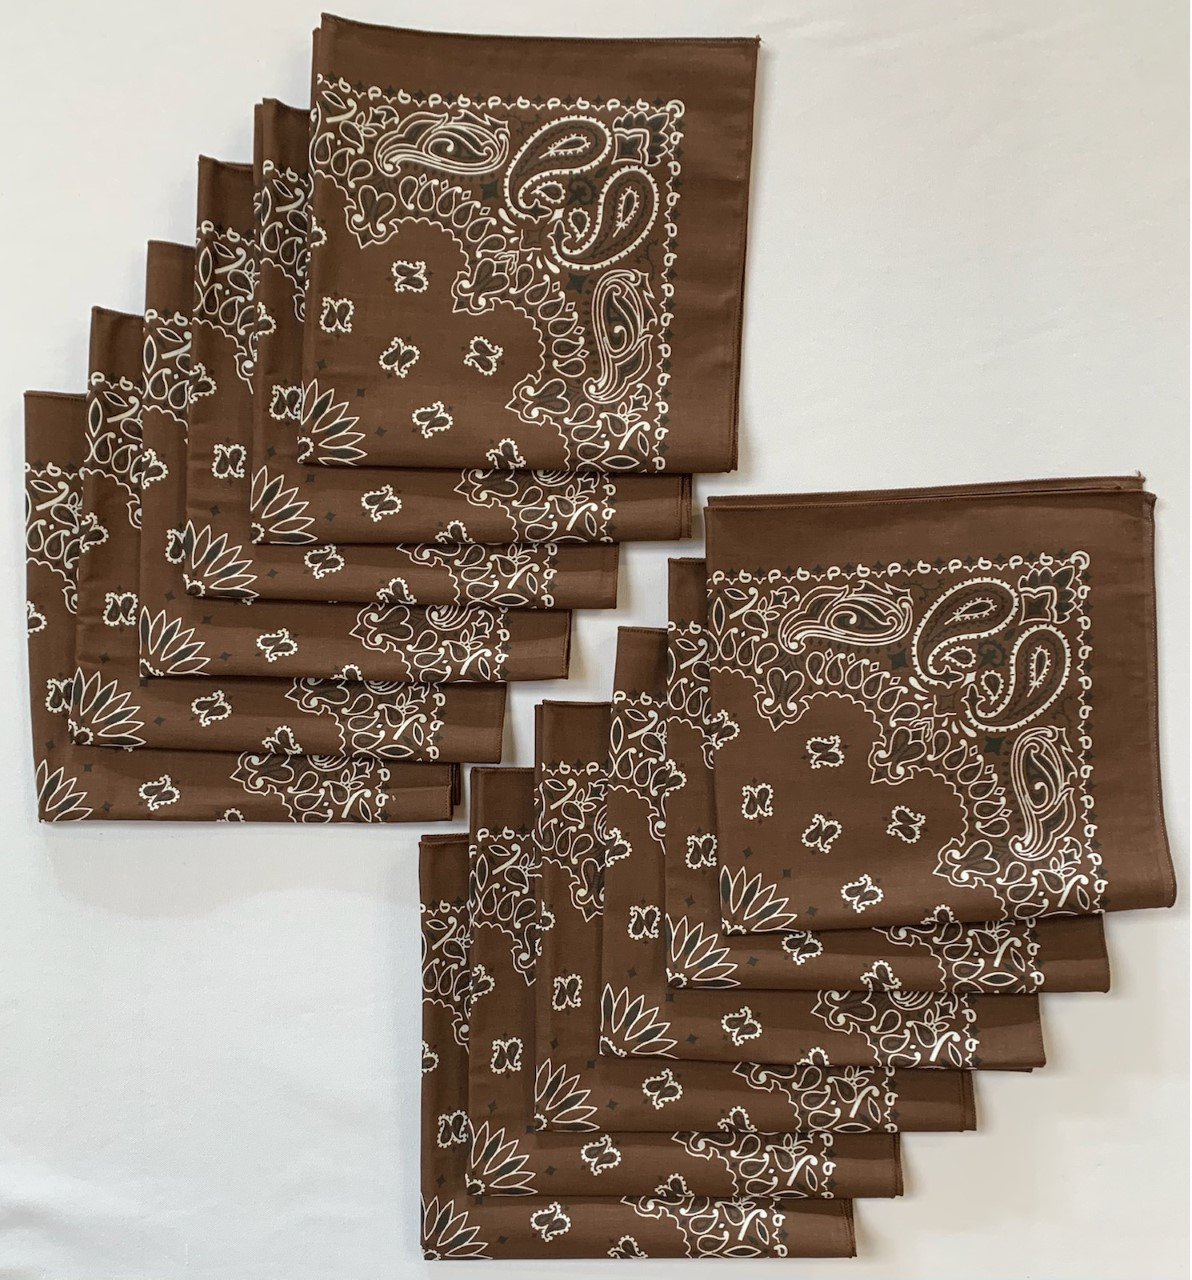 "Made in the USA Brown Paisley Bandanas 12 Pk, 22"" x 22"" Cotton"